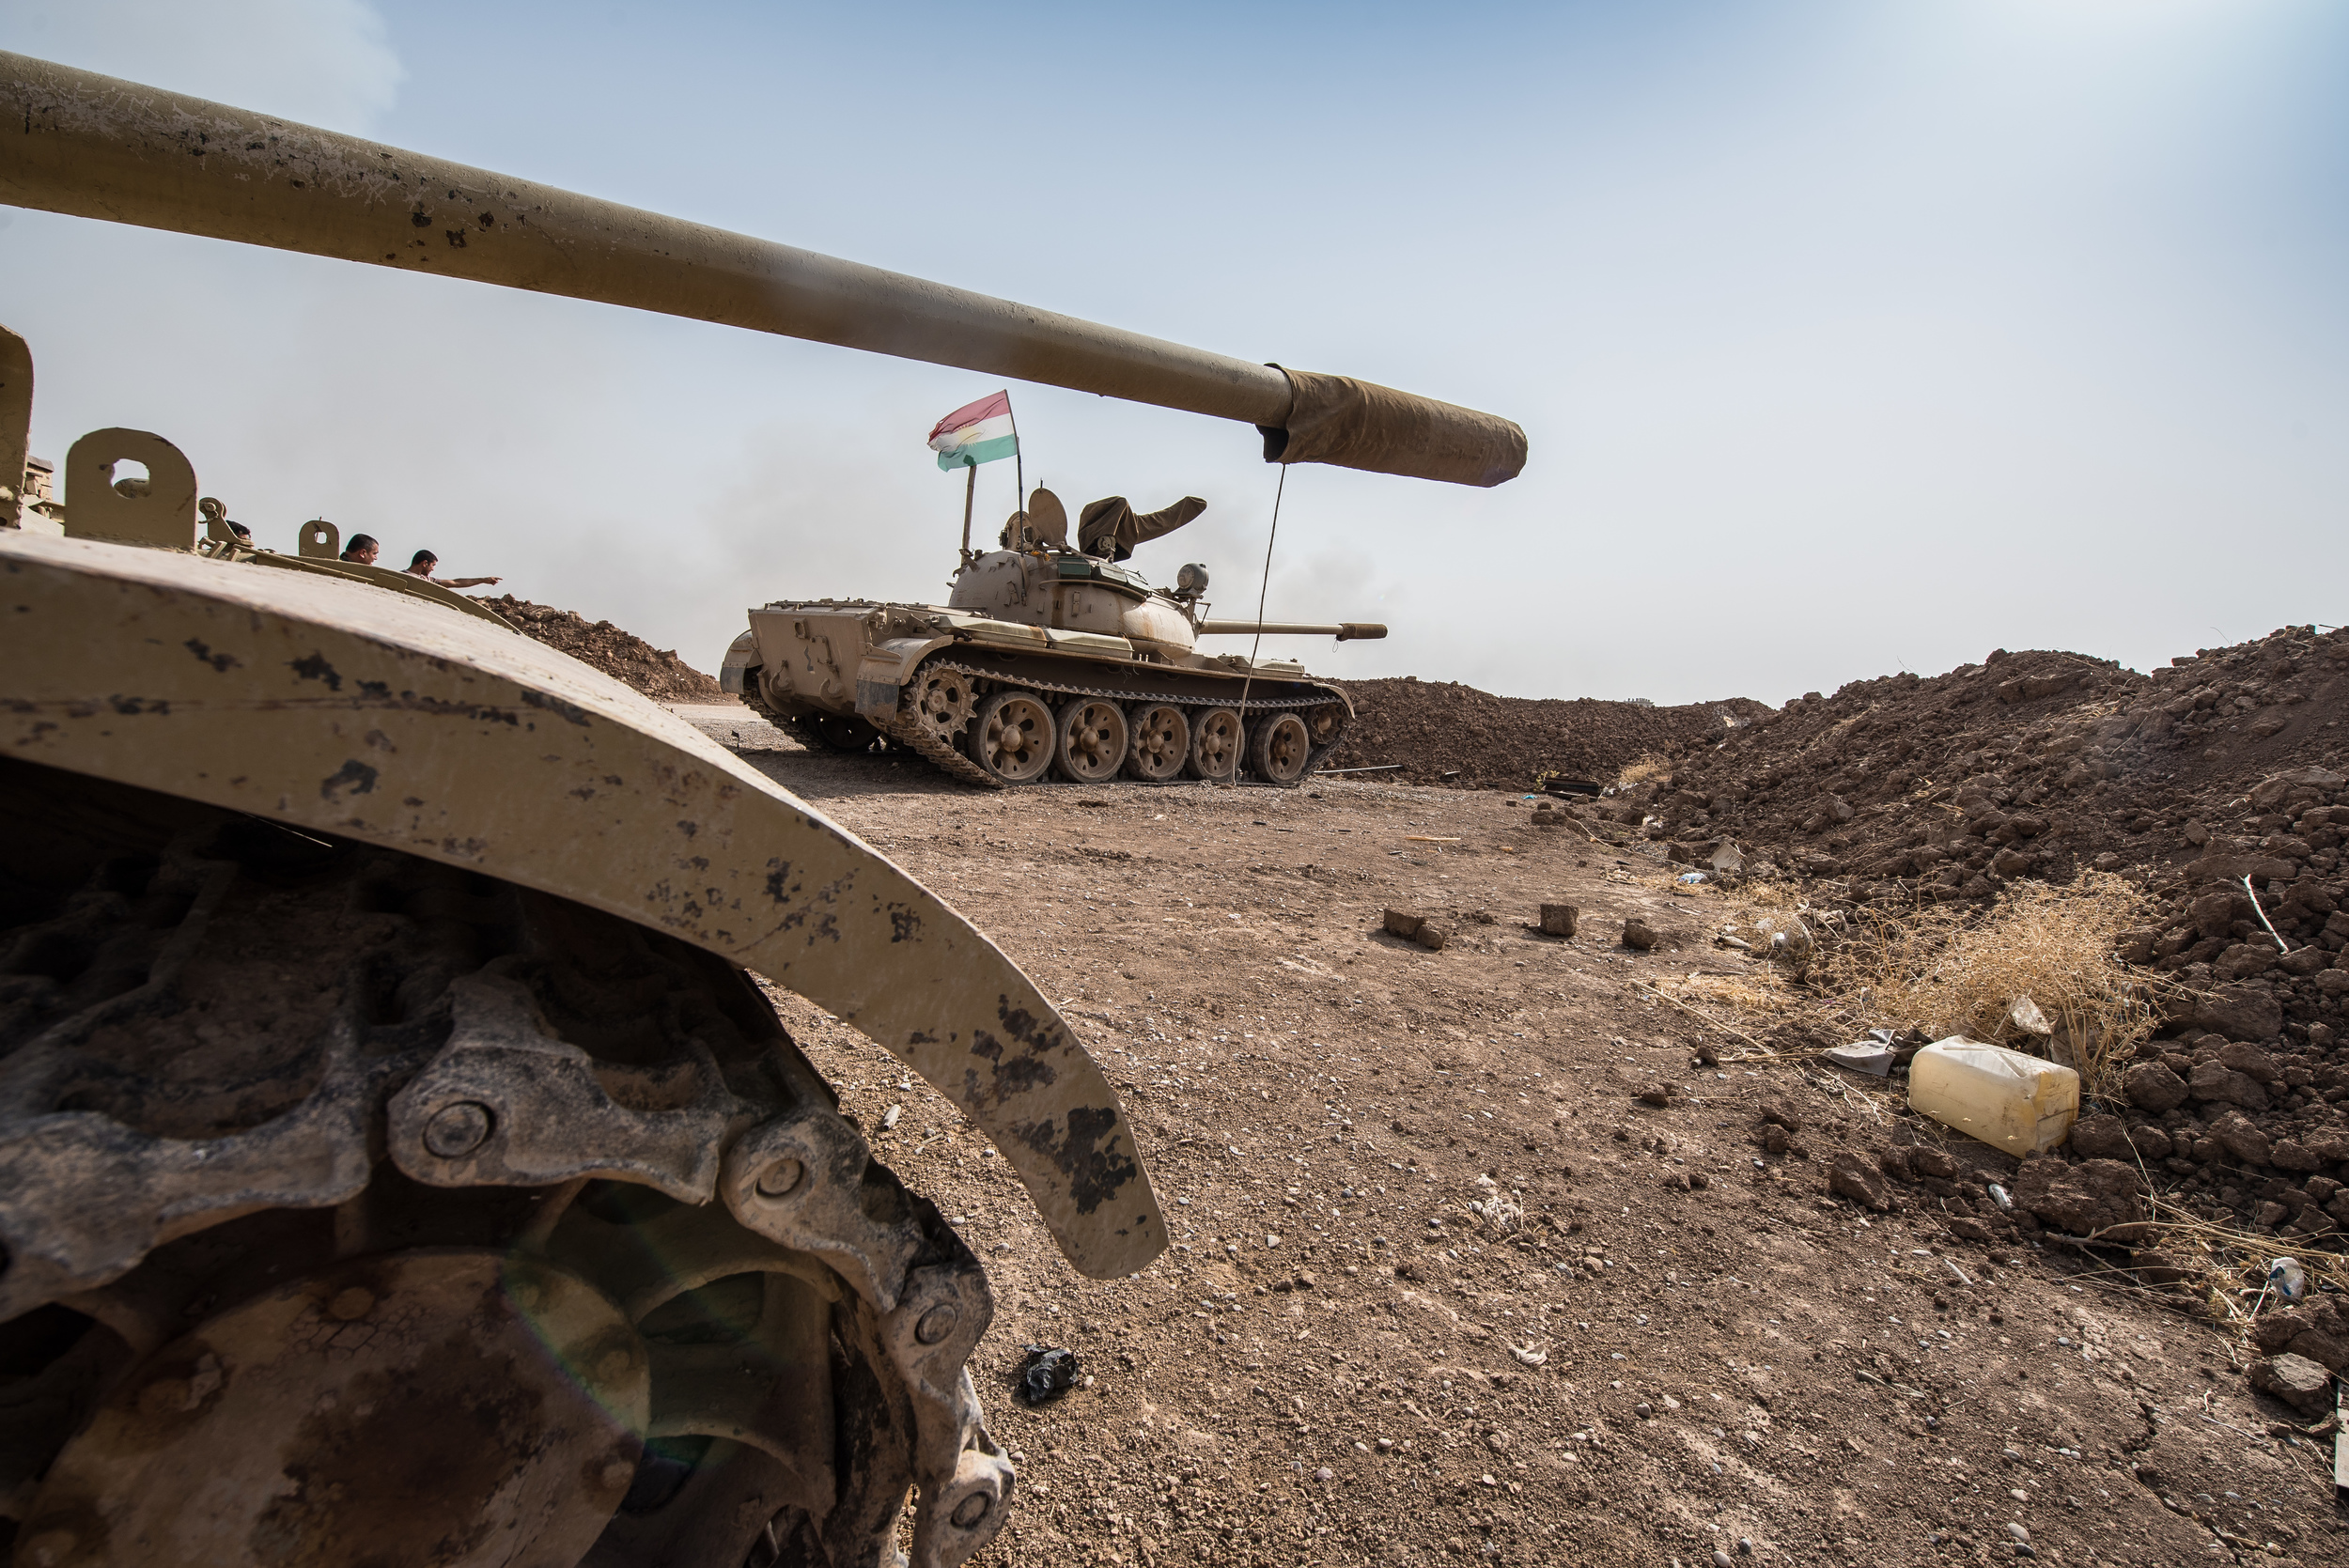 Two soviet made T-54 tanks on the Mosul frontline.